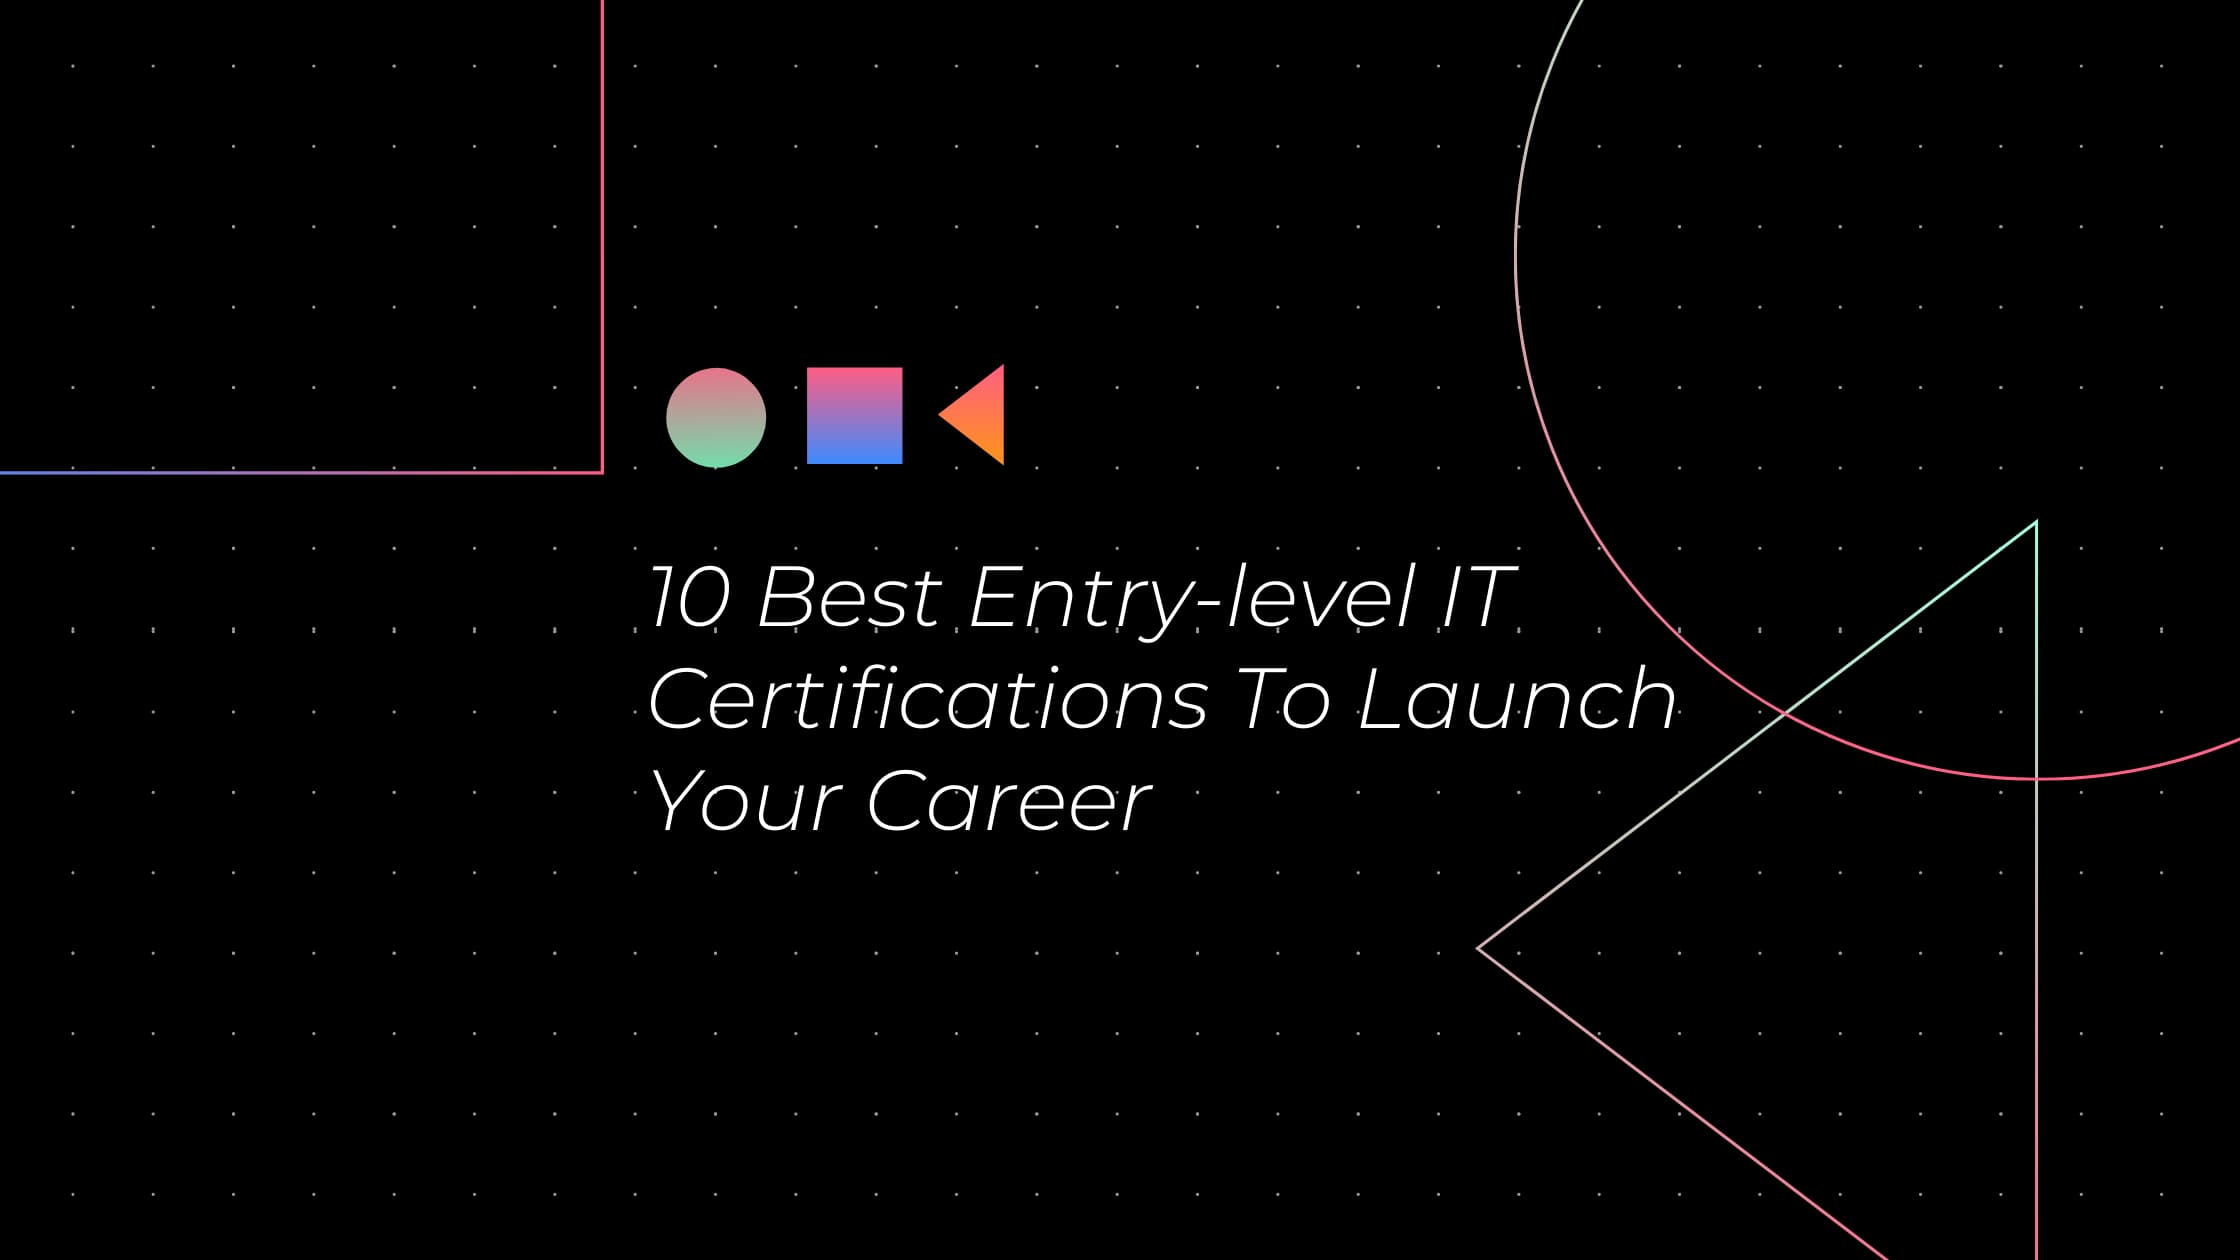 10 Best Entry-level IT Certifications To Launch Your Career